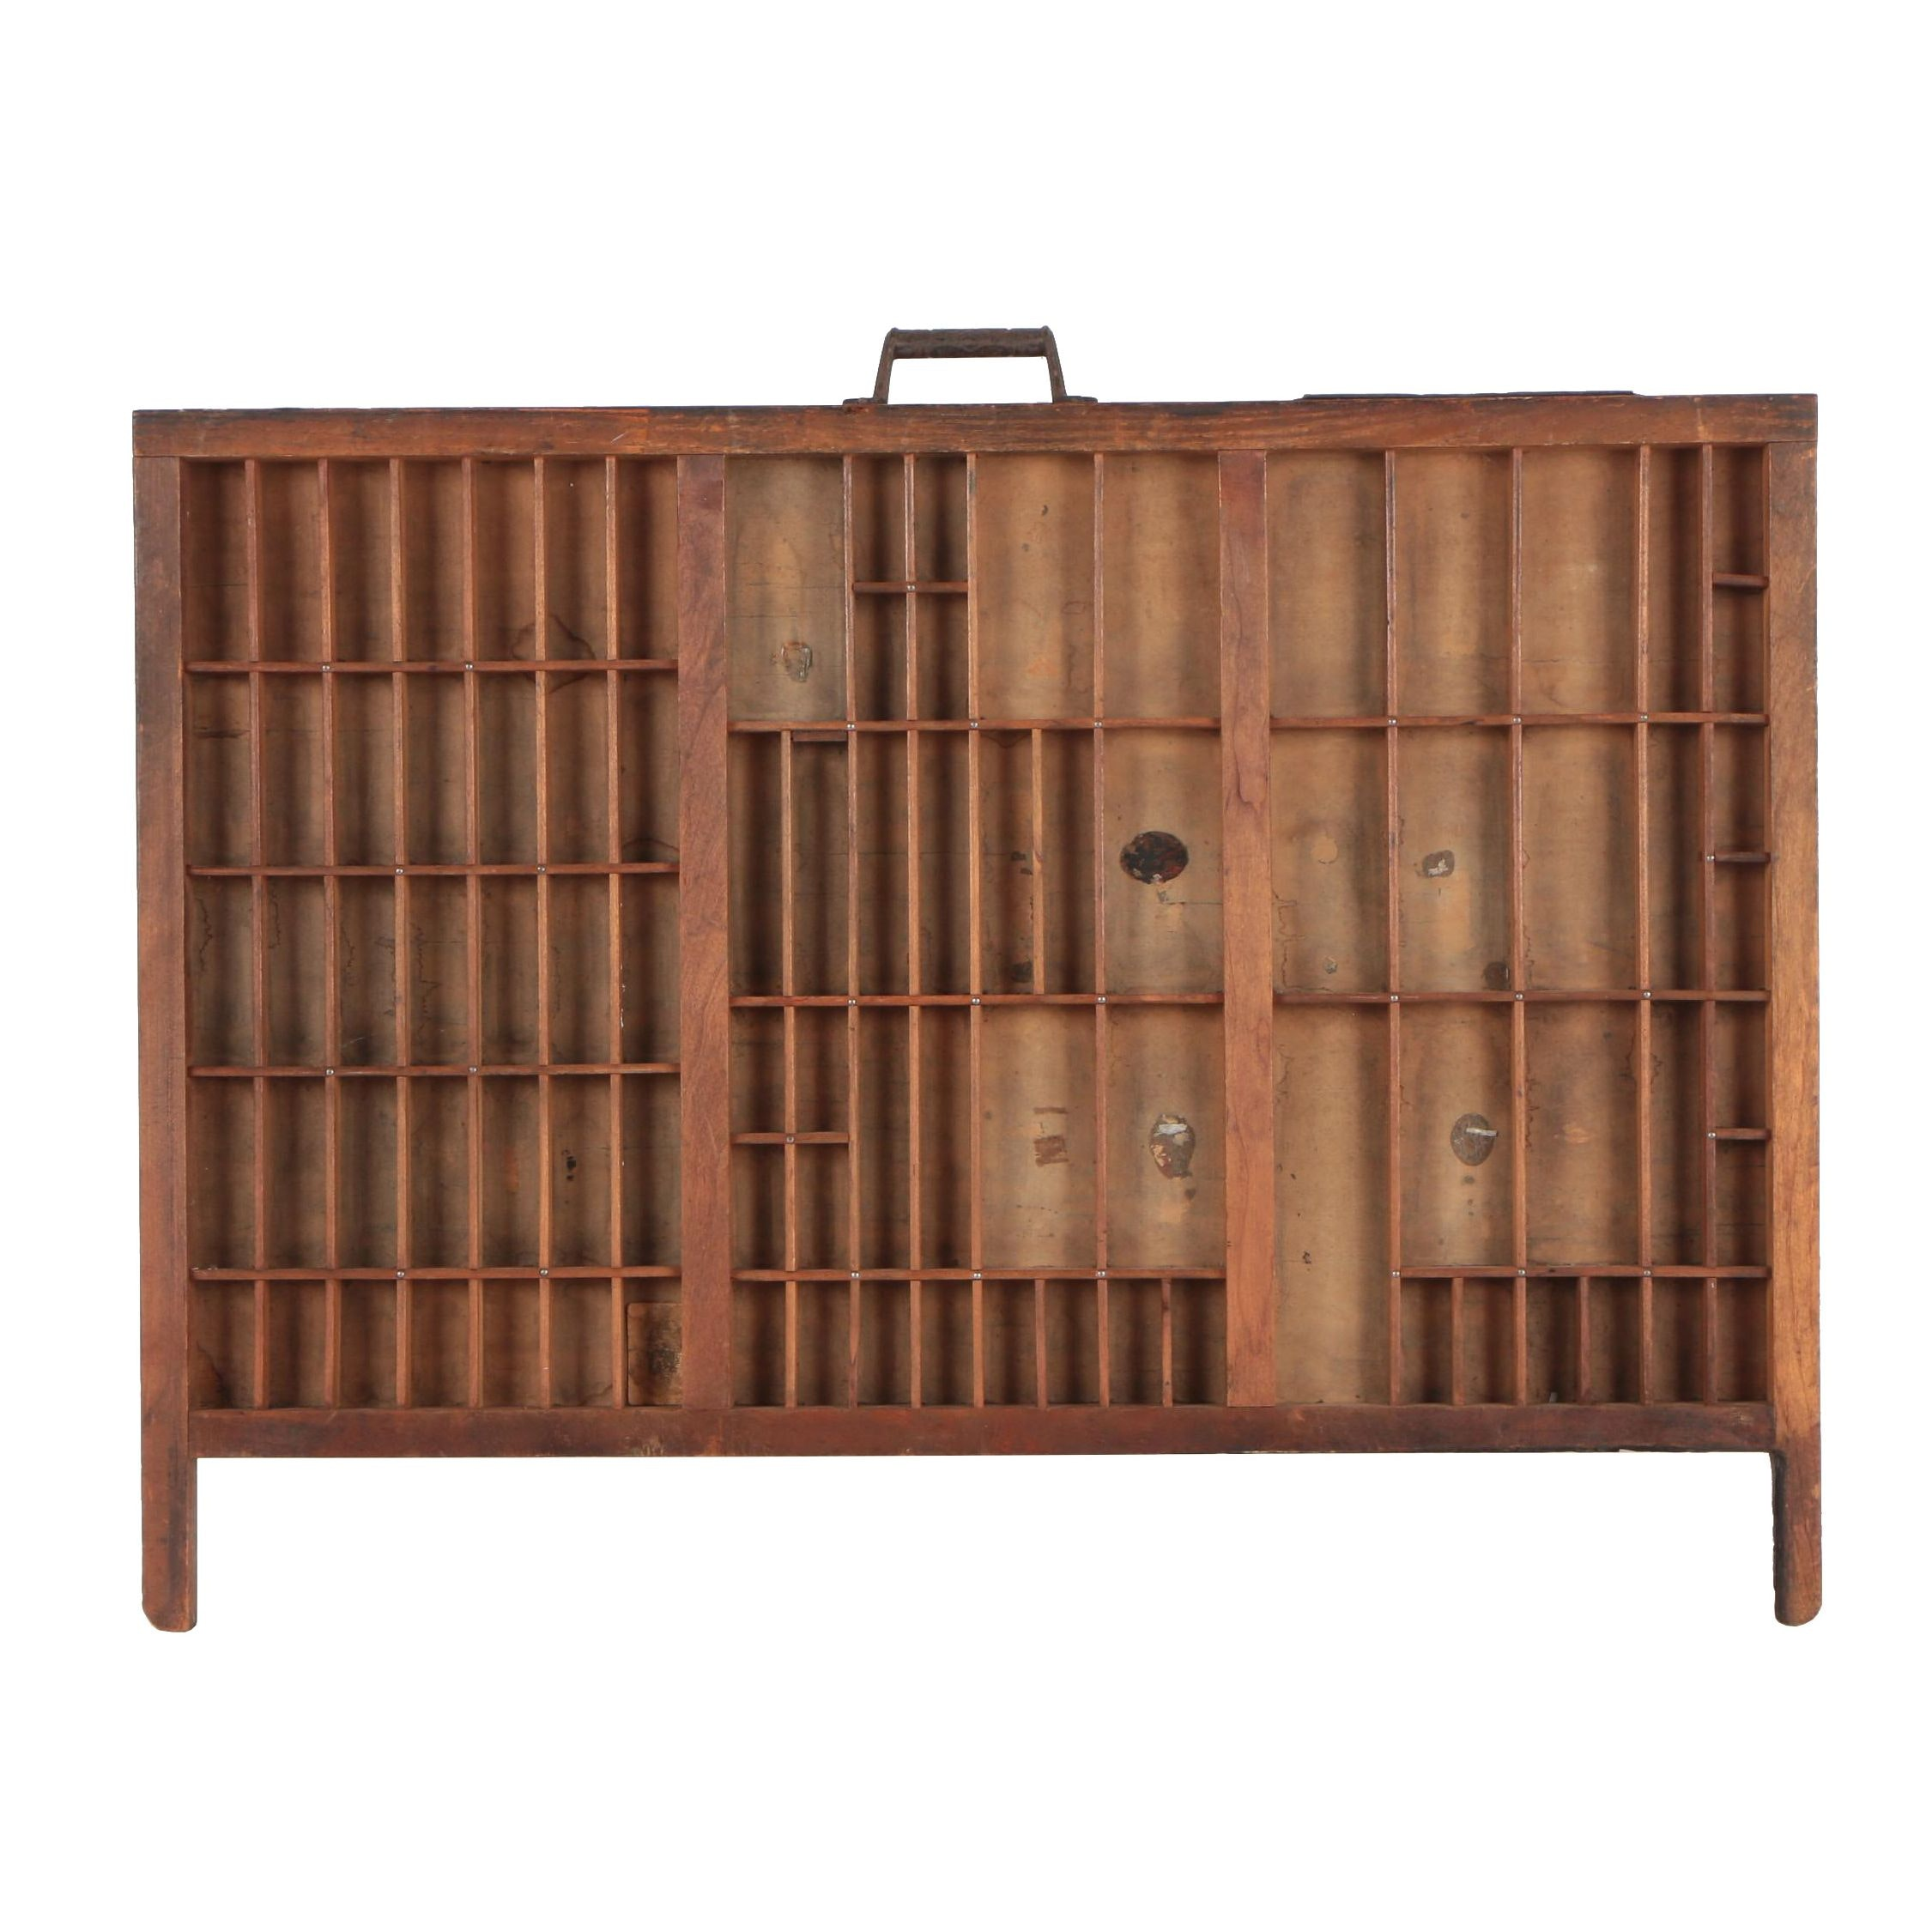 Wooden Letterpress Tray with Metal Handle and Plaque